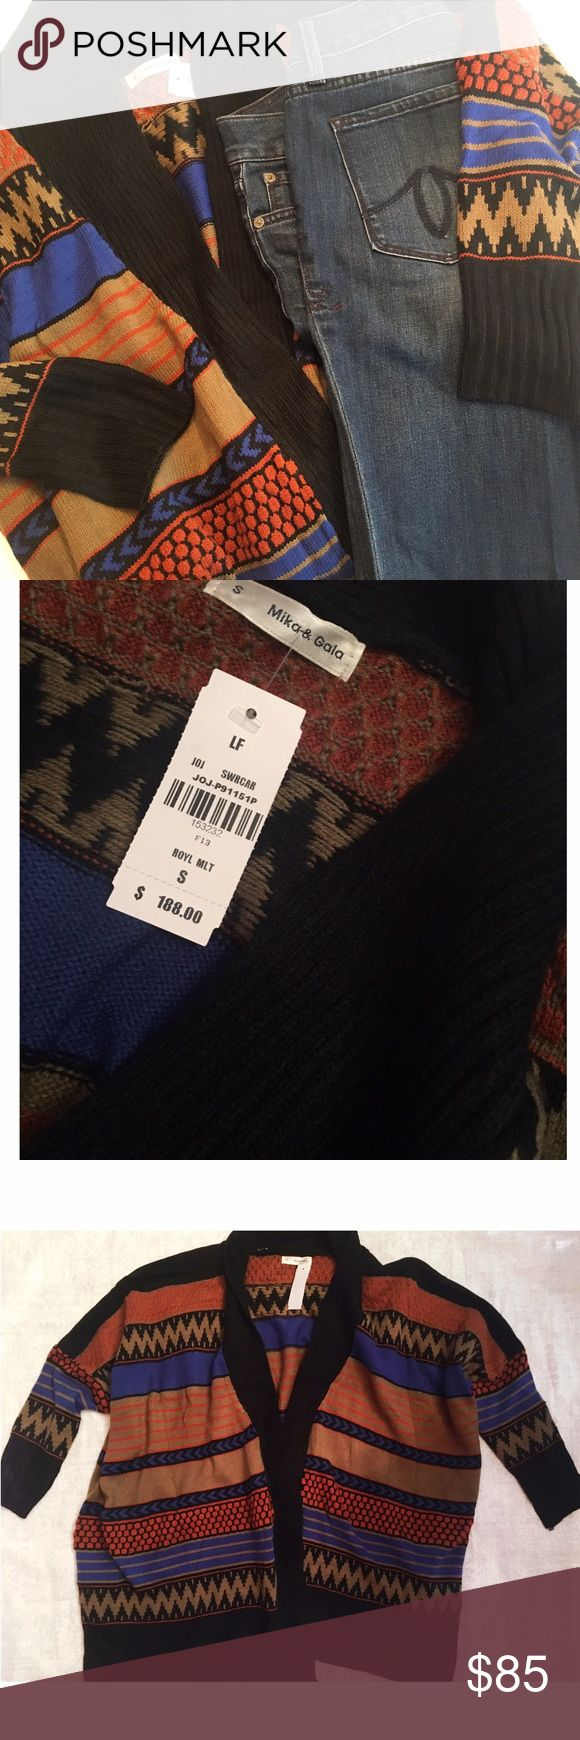 NWT - LF Mika & Gala sweater NWT - Mika & Gala oversized open cardigan sweater. Colors are tan, black, blue and orange. 65% wool/ 35% acrylic LF Sweaters Cardigans